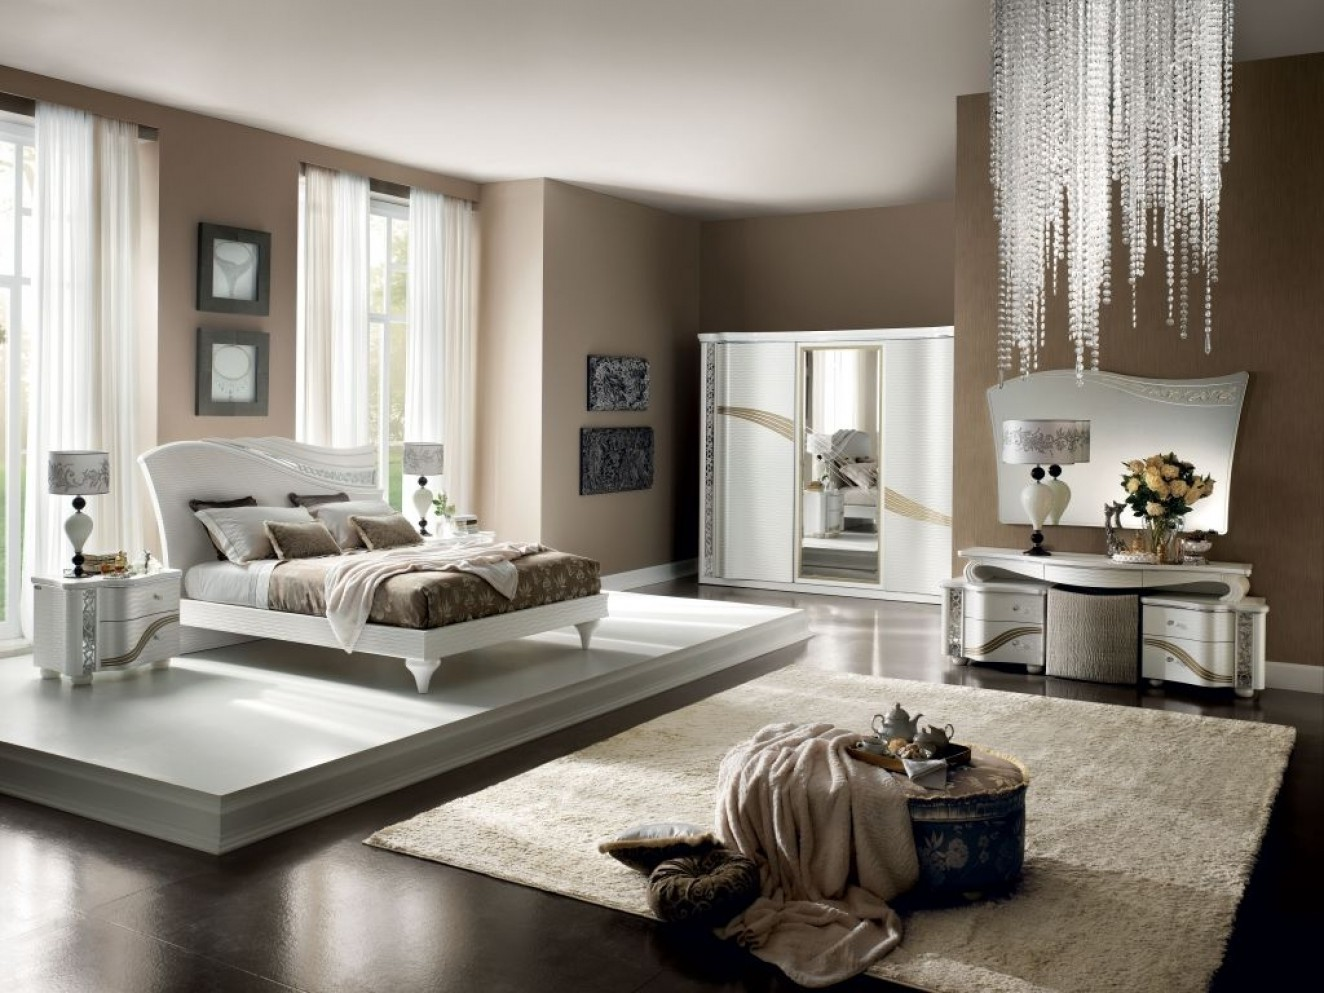 modele de chambre a coucher avec dressing with modele de chambre romantique. Black Bedroom Furniture Sets. Home Design Ideas